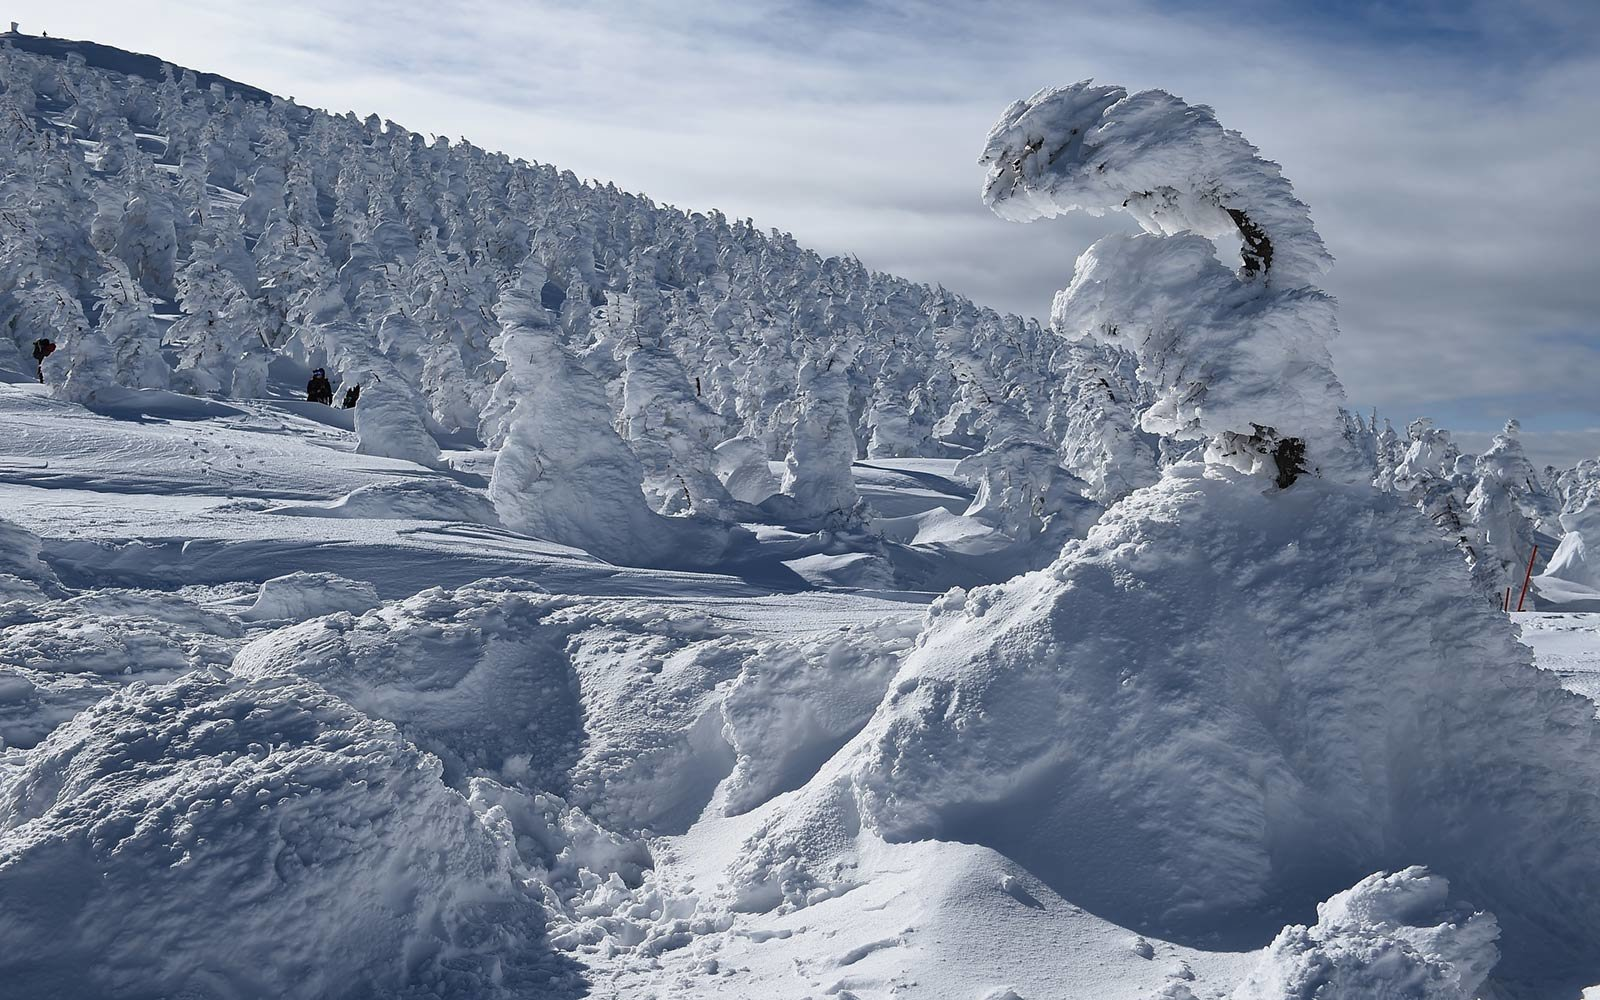 Snow monsters landscape in Japan